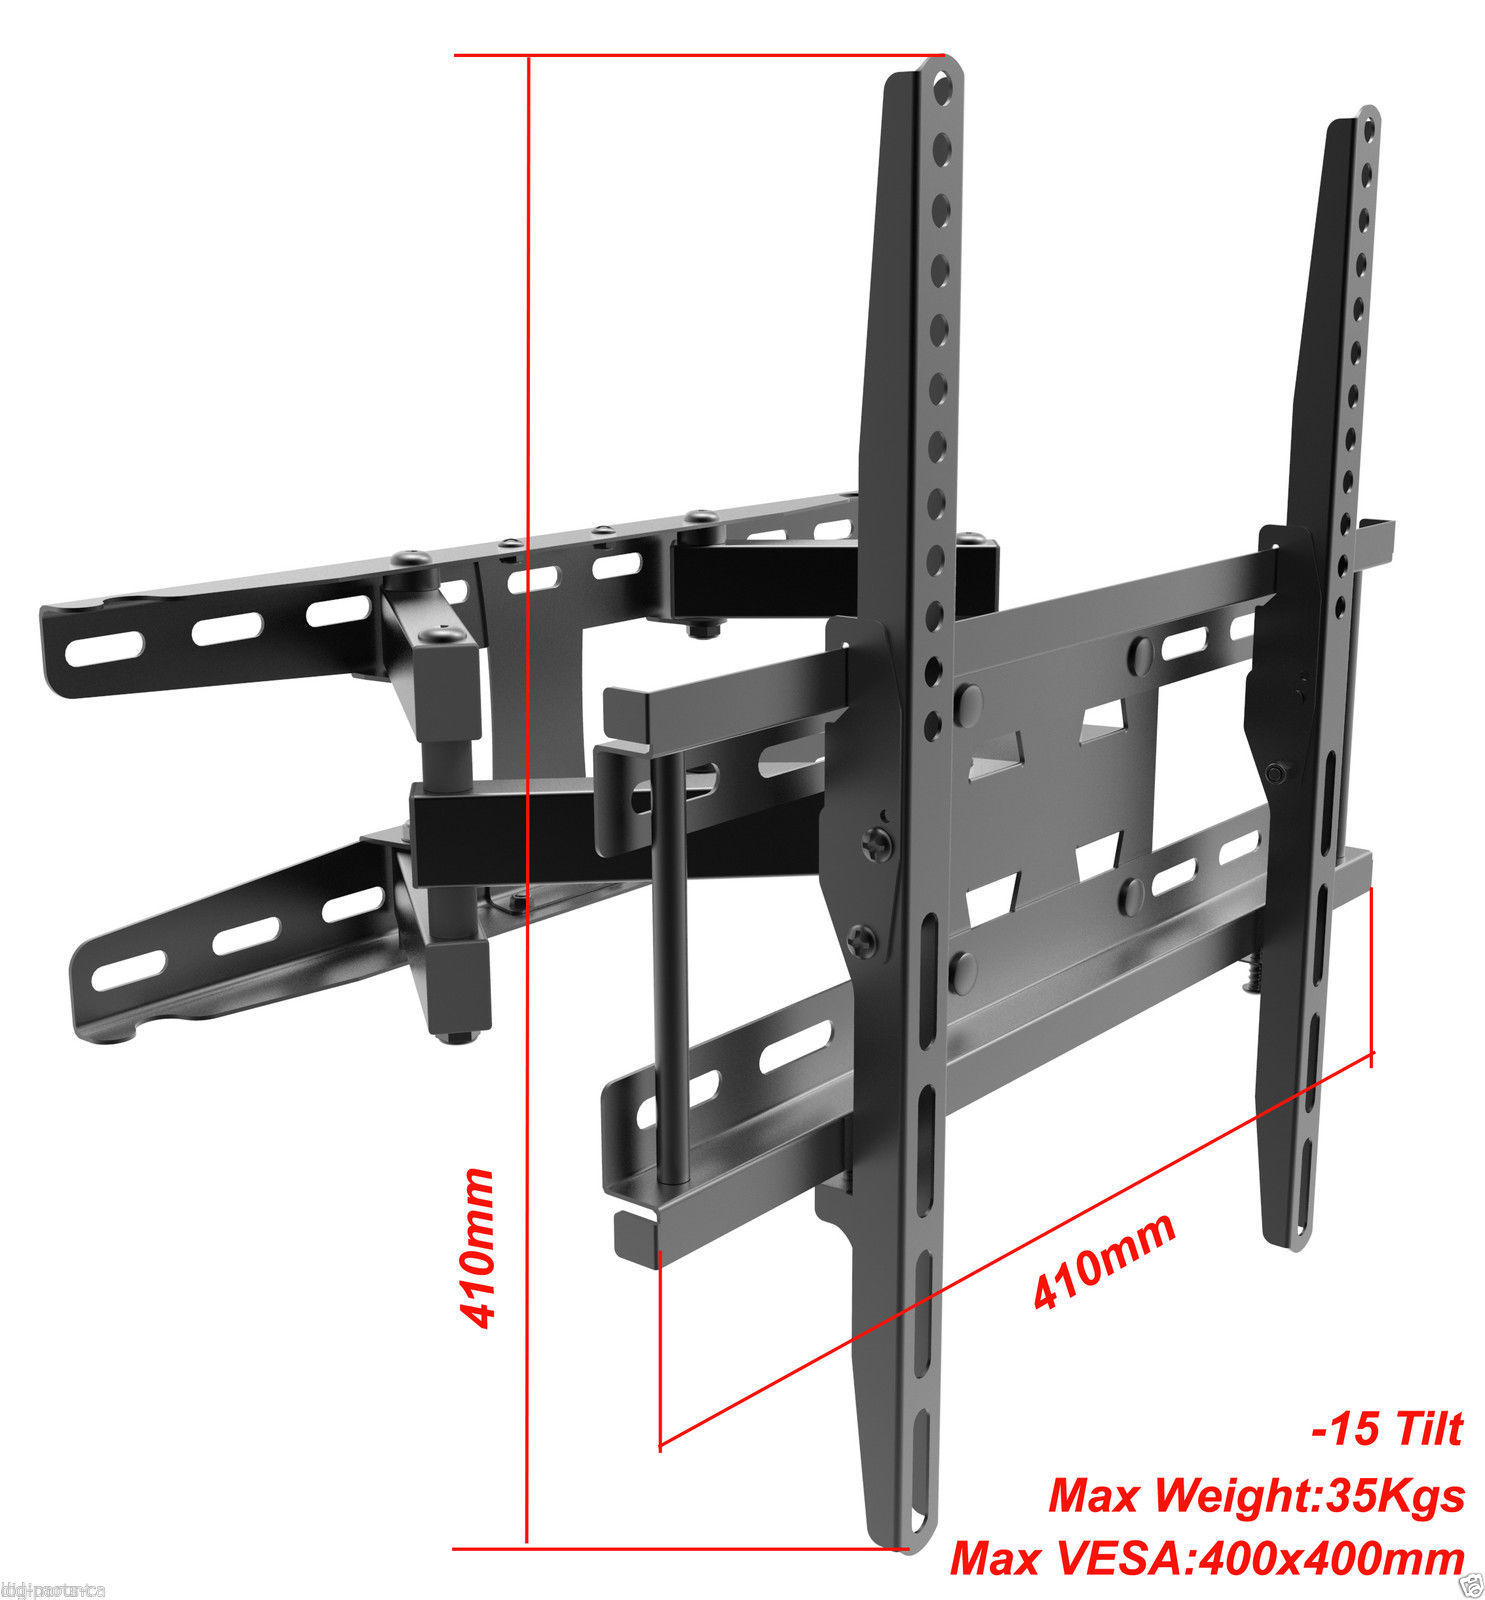 Здесь можно купить  Universal Television Wall Hanger LCD LED Plasma Rotating Arm TV Mount Bracket VESA 420X410 Size 120 Tilt Swivel AE107CK1DE Universal Television Wall Hanger LCD LED Plasma Rotating Arm TV Mount Bracket VESA 420X410 Size 120 Tilt Swivel AE107CK1DE Бытовая электроника